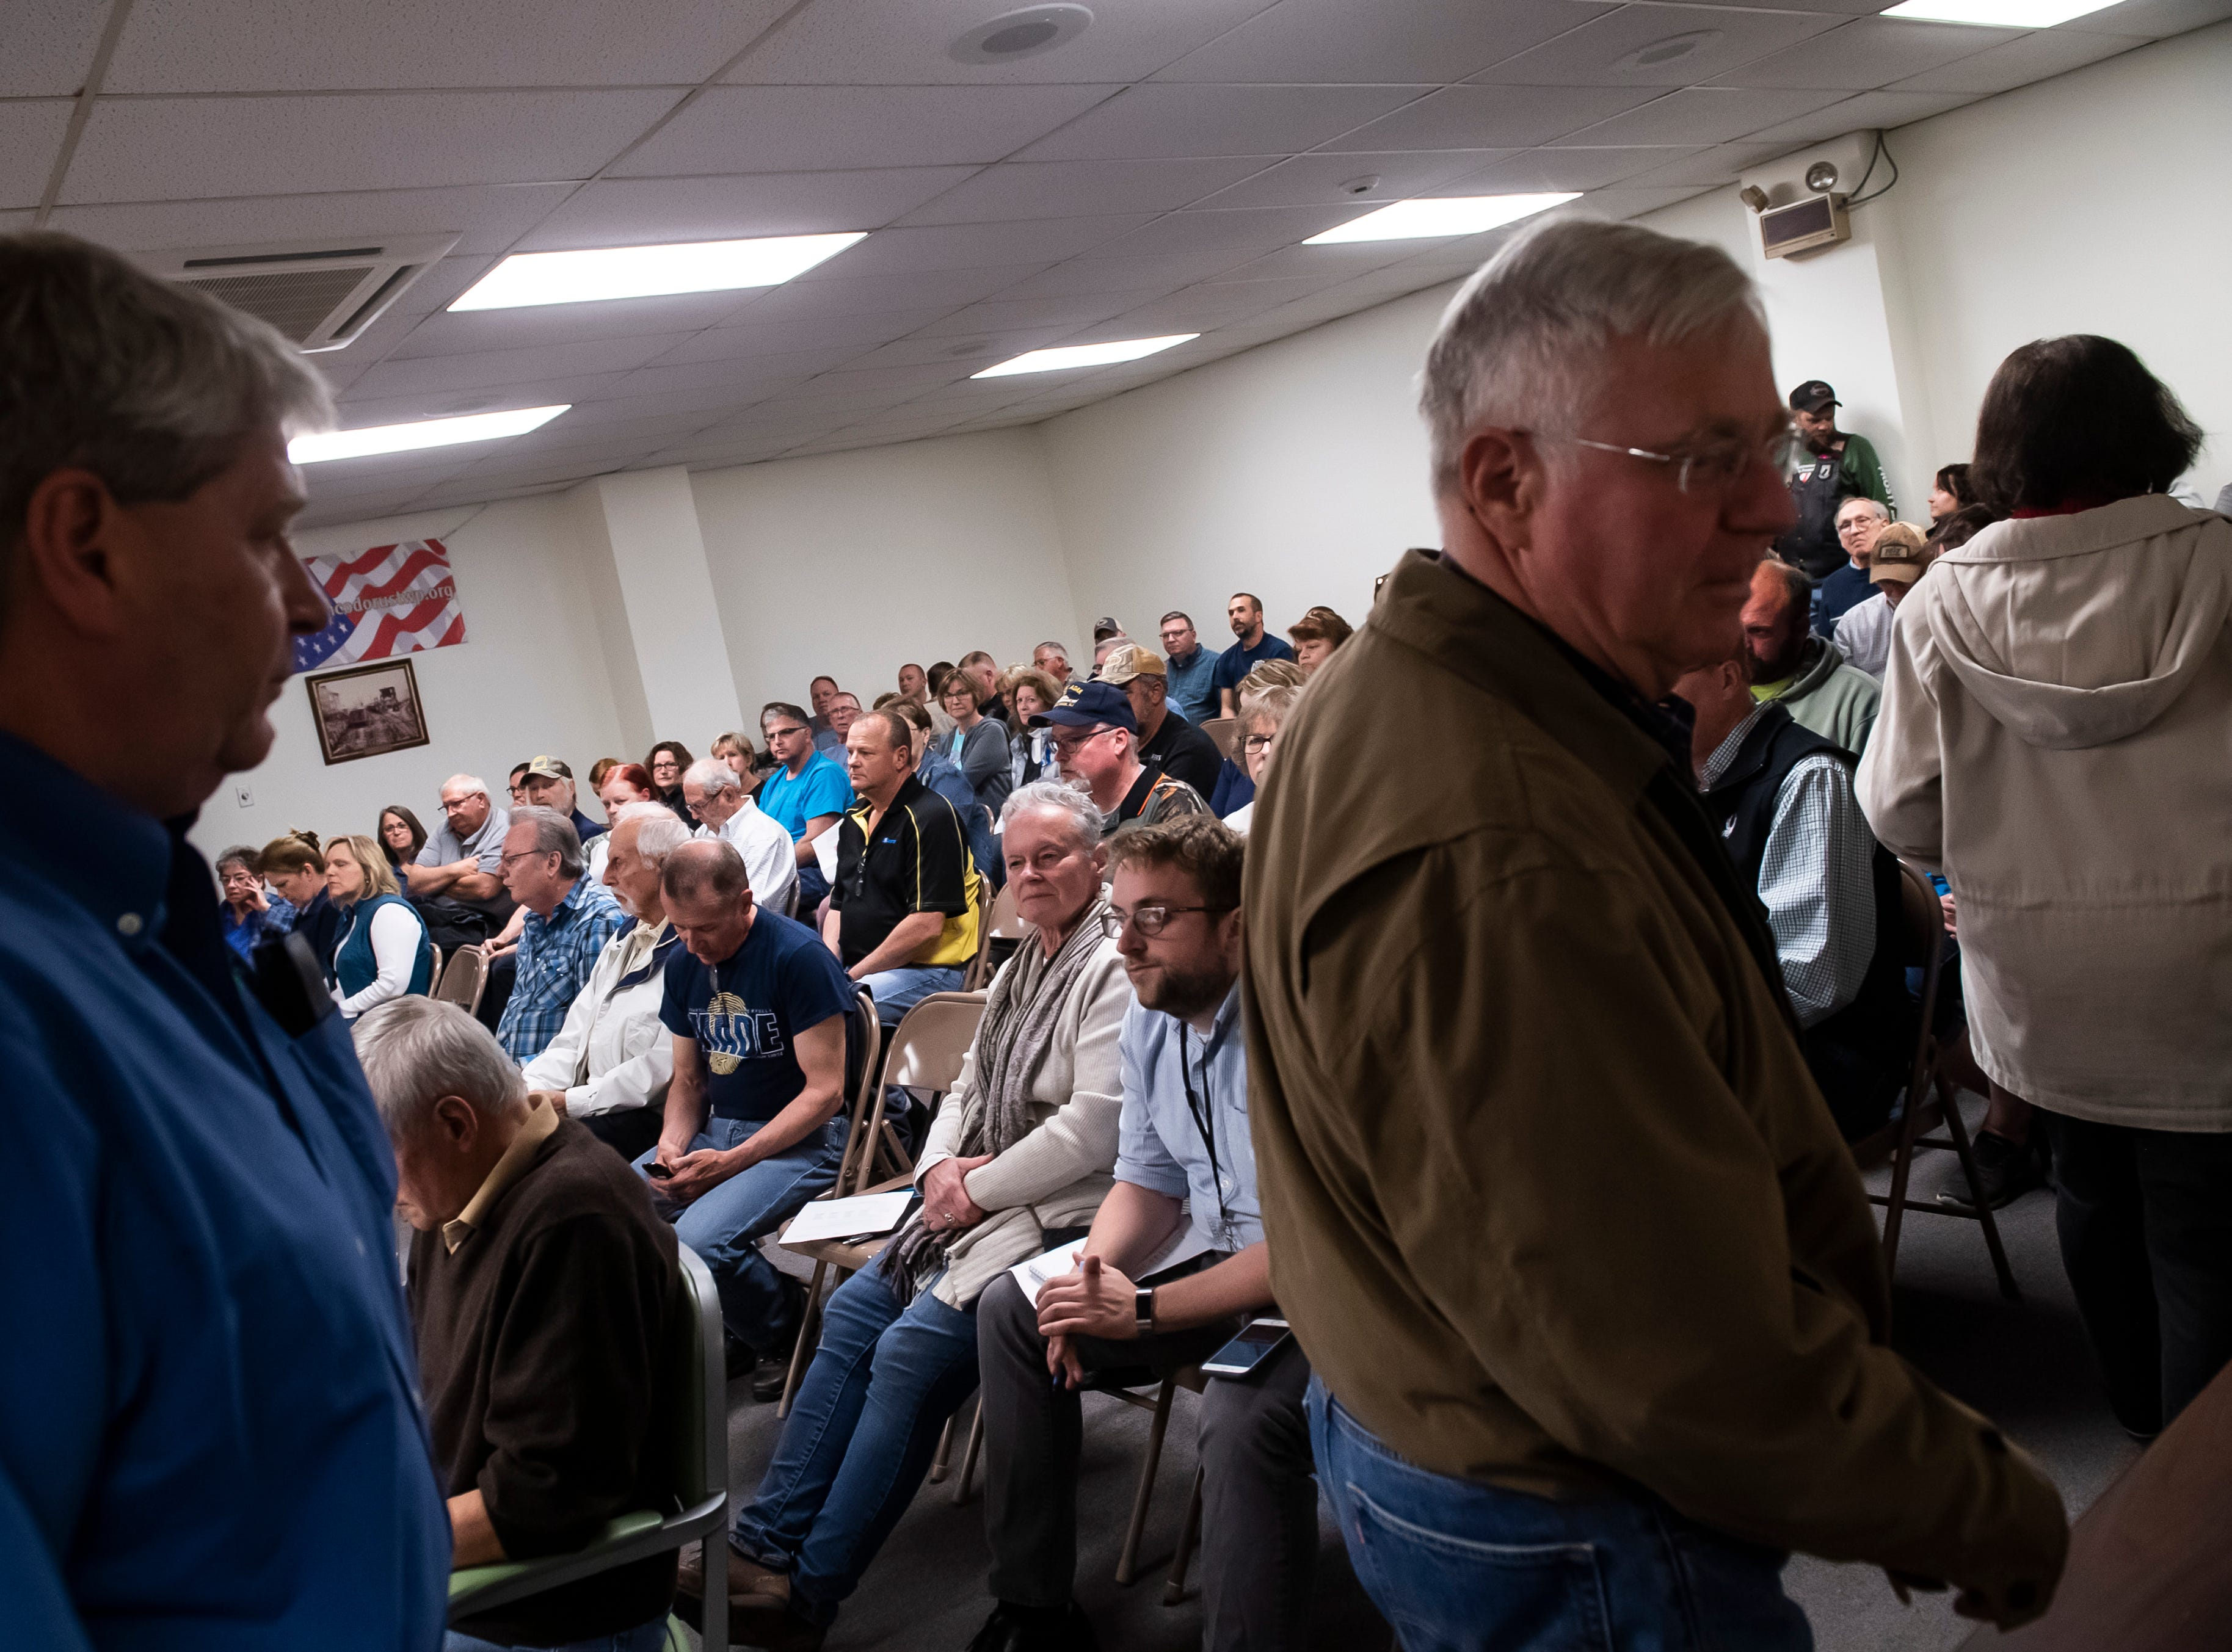 People pack into the North Codorus Township building for the monthly Board of Supervisors meeting on Tuesday, April 16, 2019.